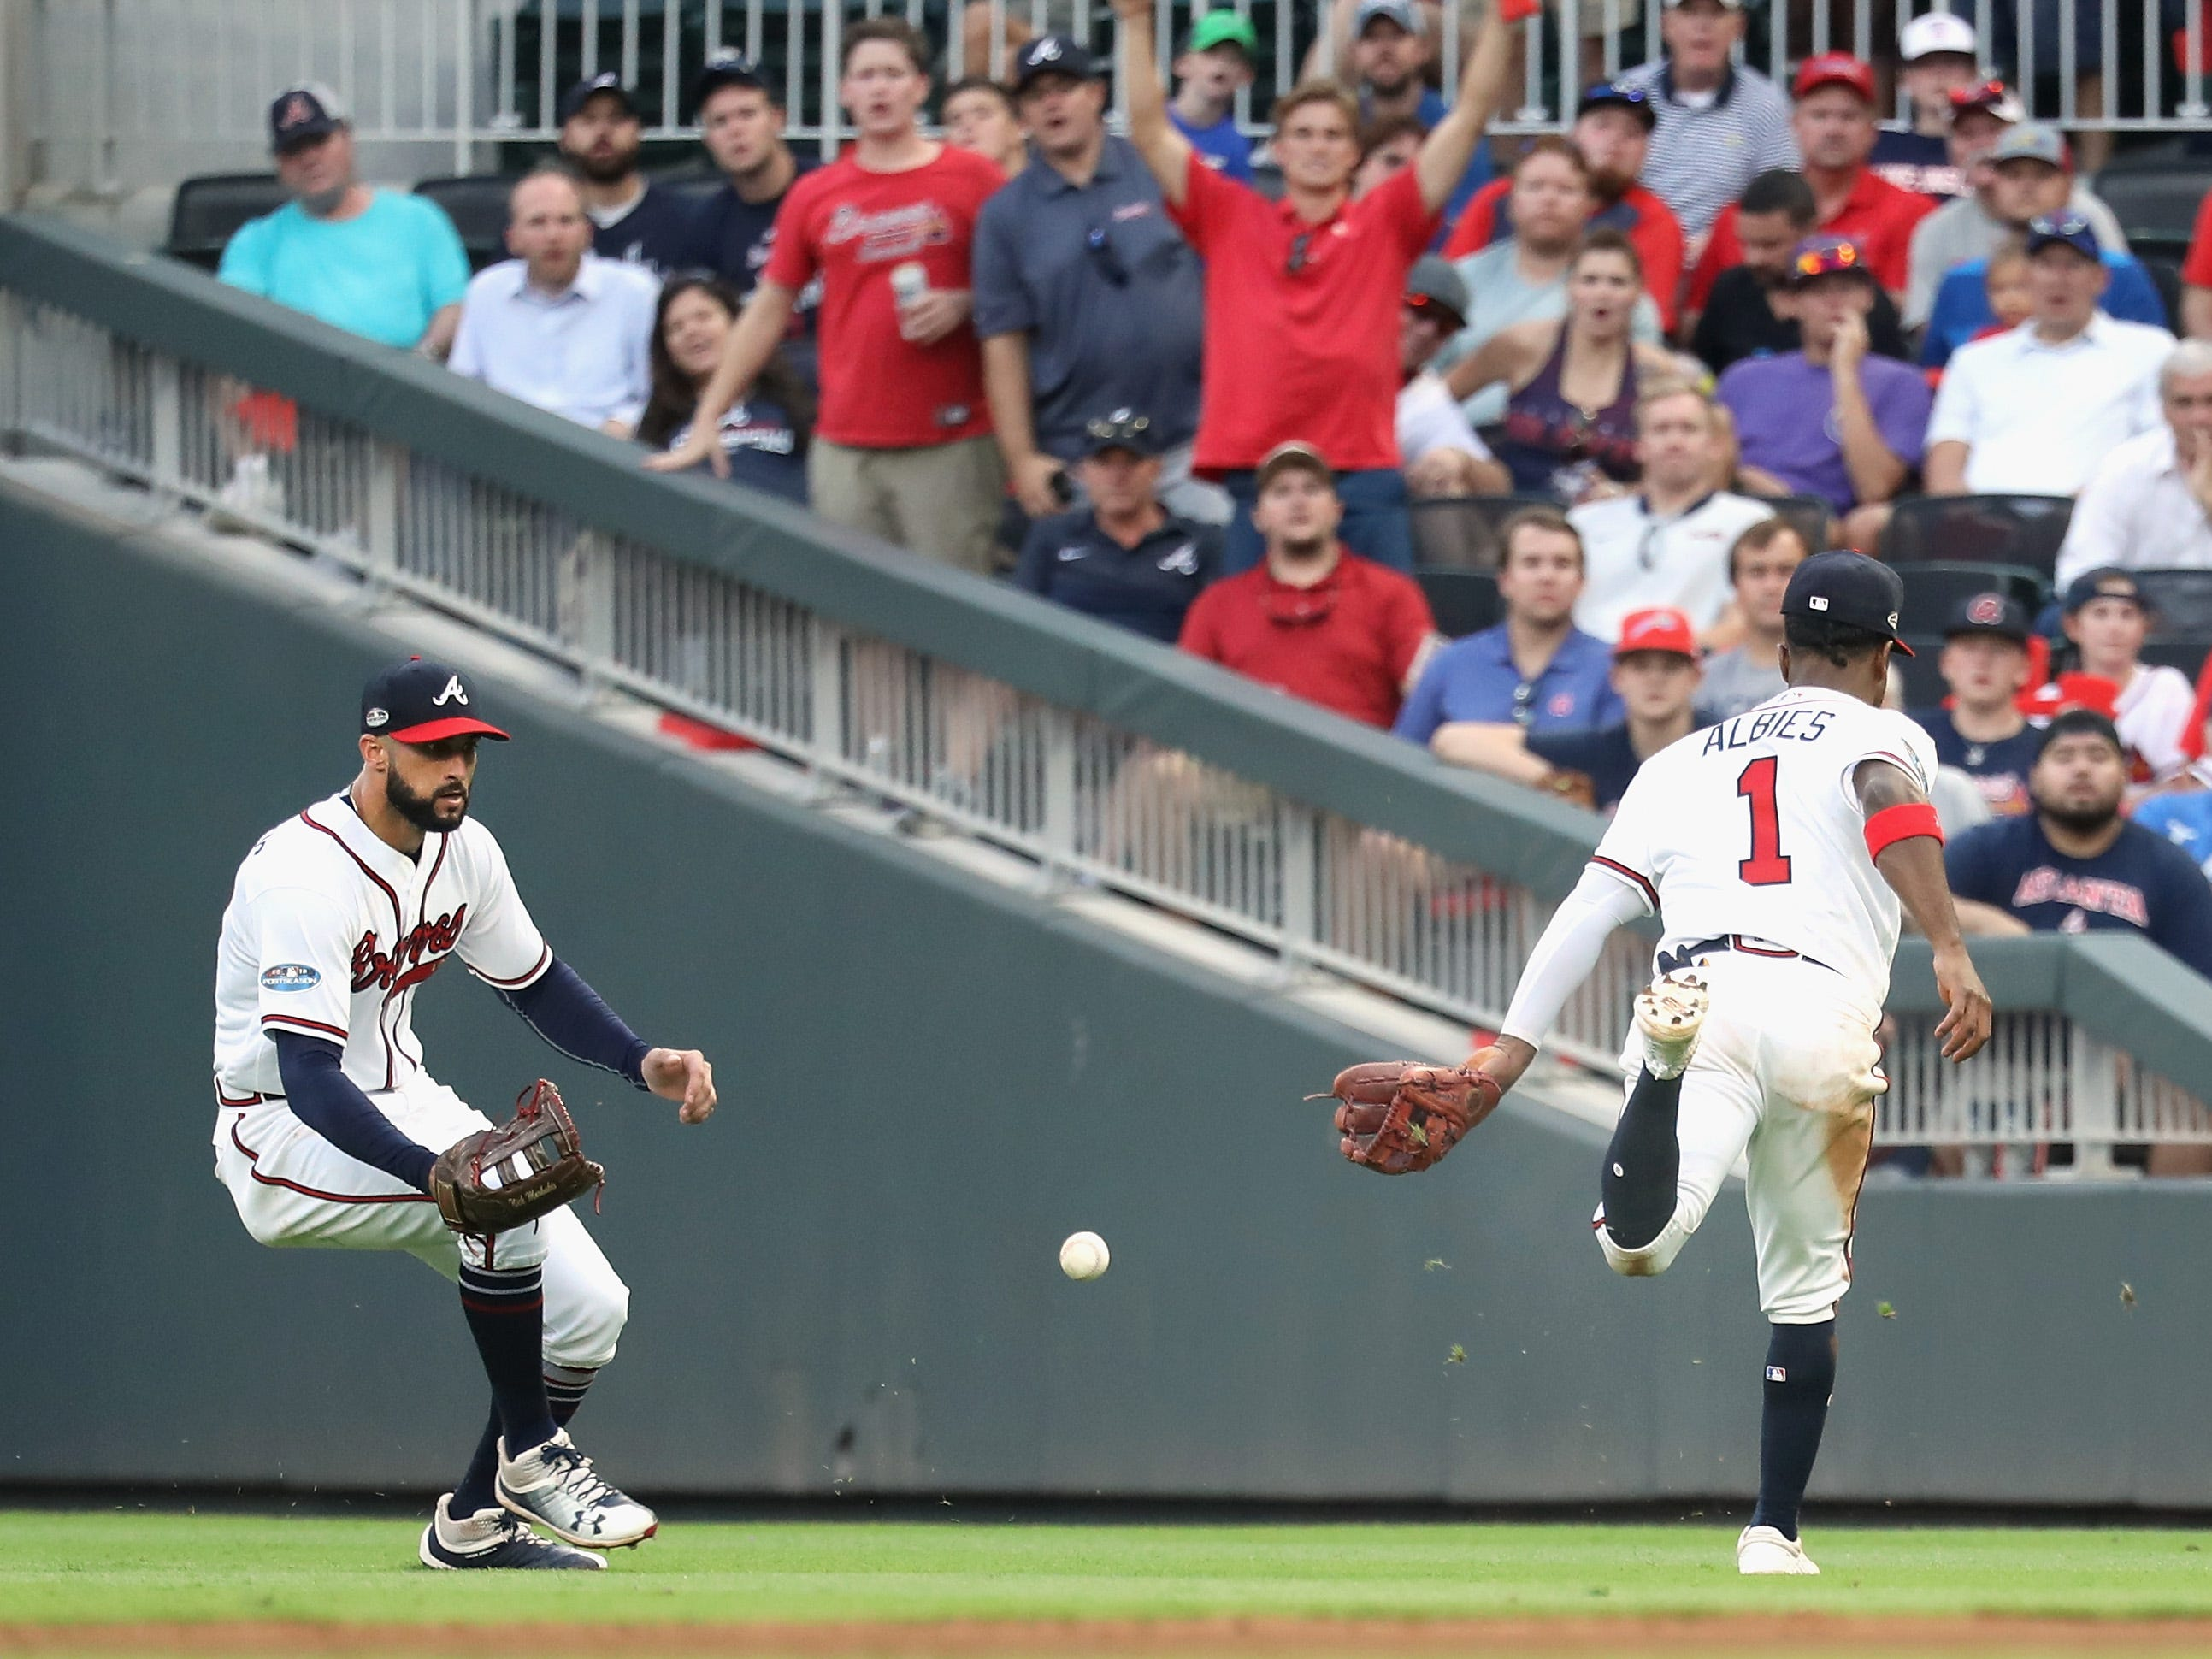 NLDS Game 4: A bloop single falls in between right fielder Nick Markakis and second baseman Ozzie Albies in the sixth inning.